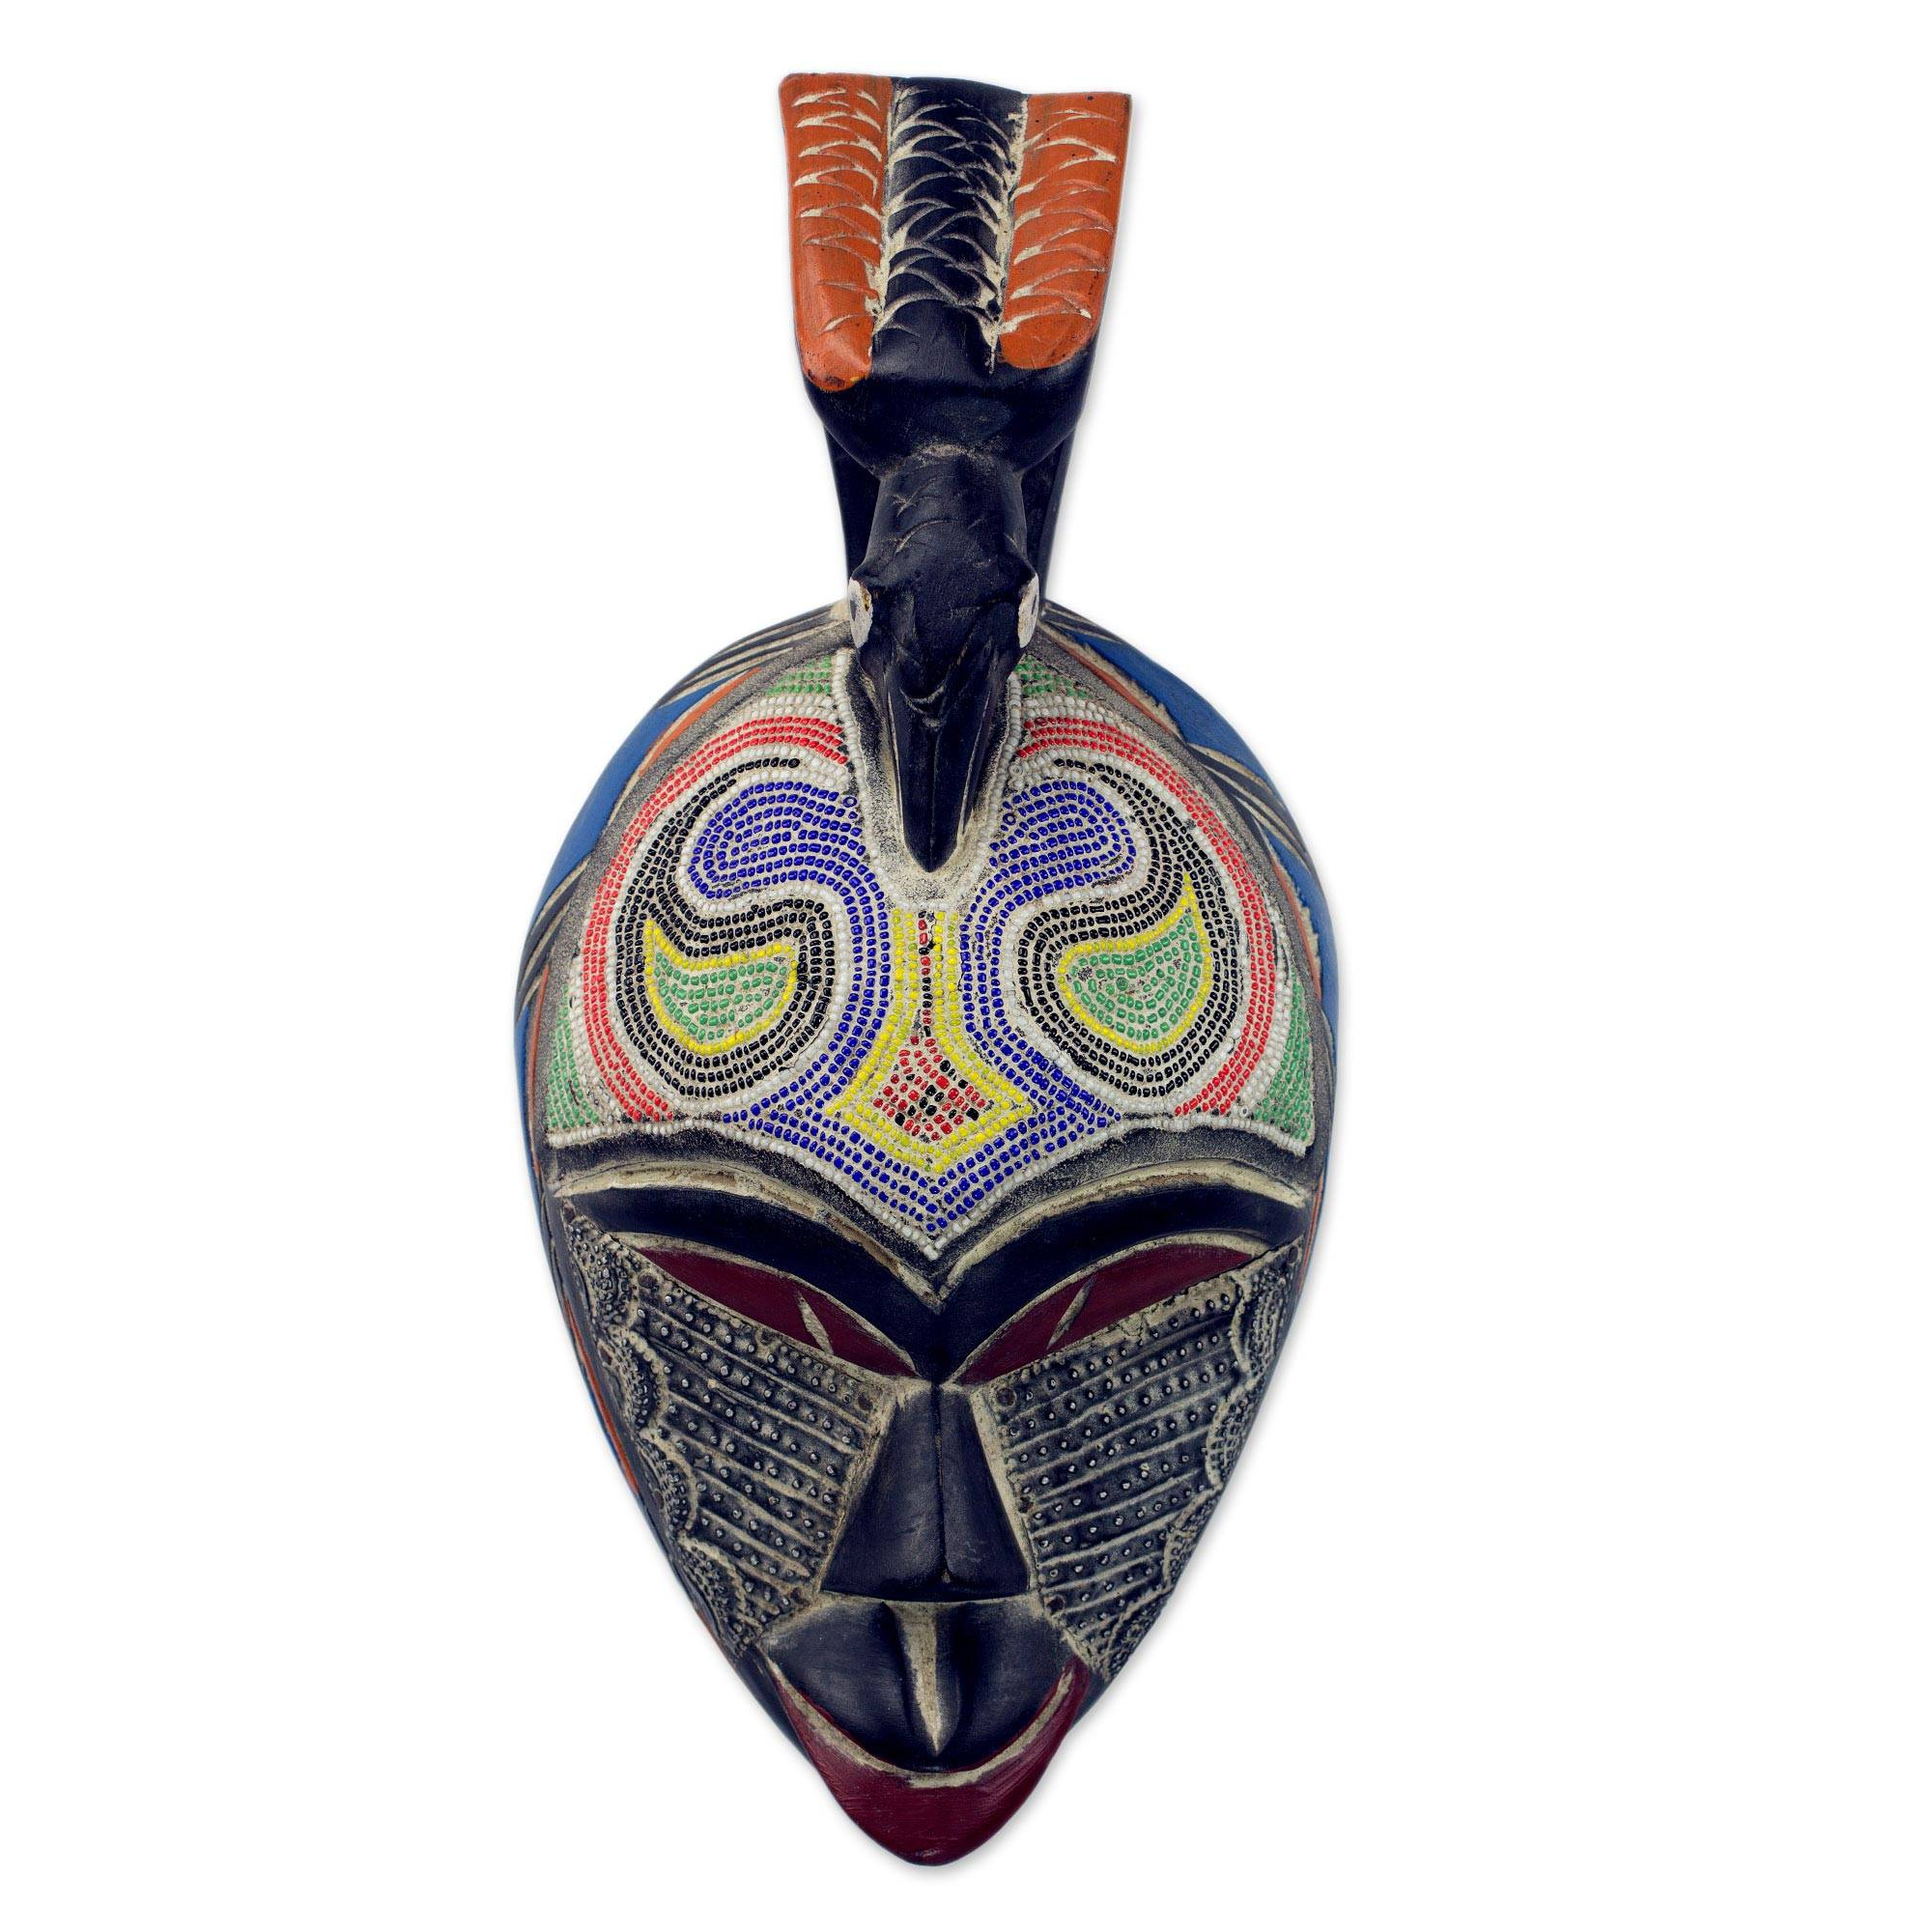 Unicef Uk Market Recycled Glass And Wood Beaded African Wall Mask With Bird Friendly Dove